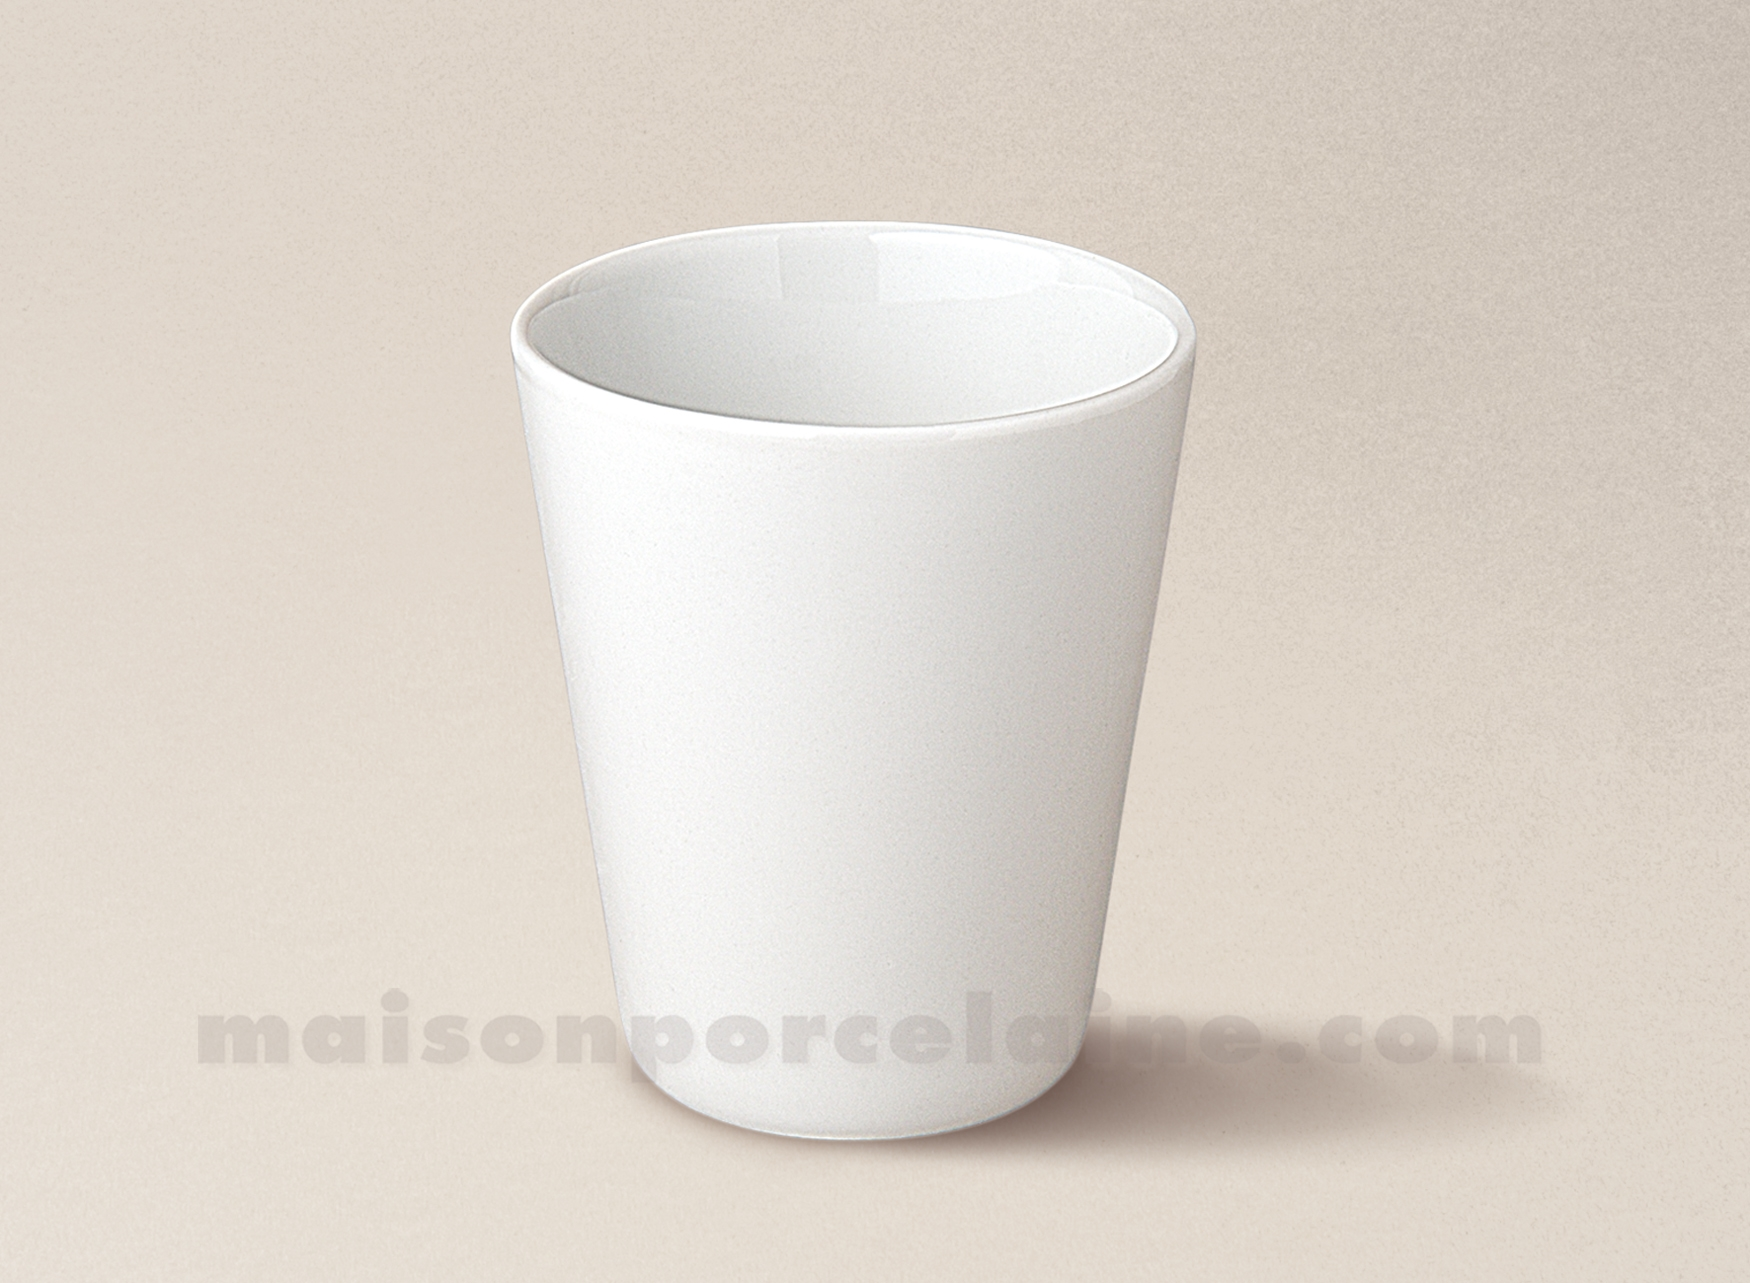 Verre The Verre The Conique Porcelaine Blanche 8x7 16cl Maison De La